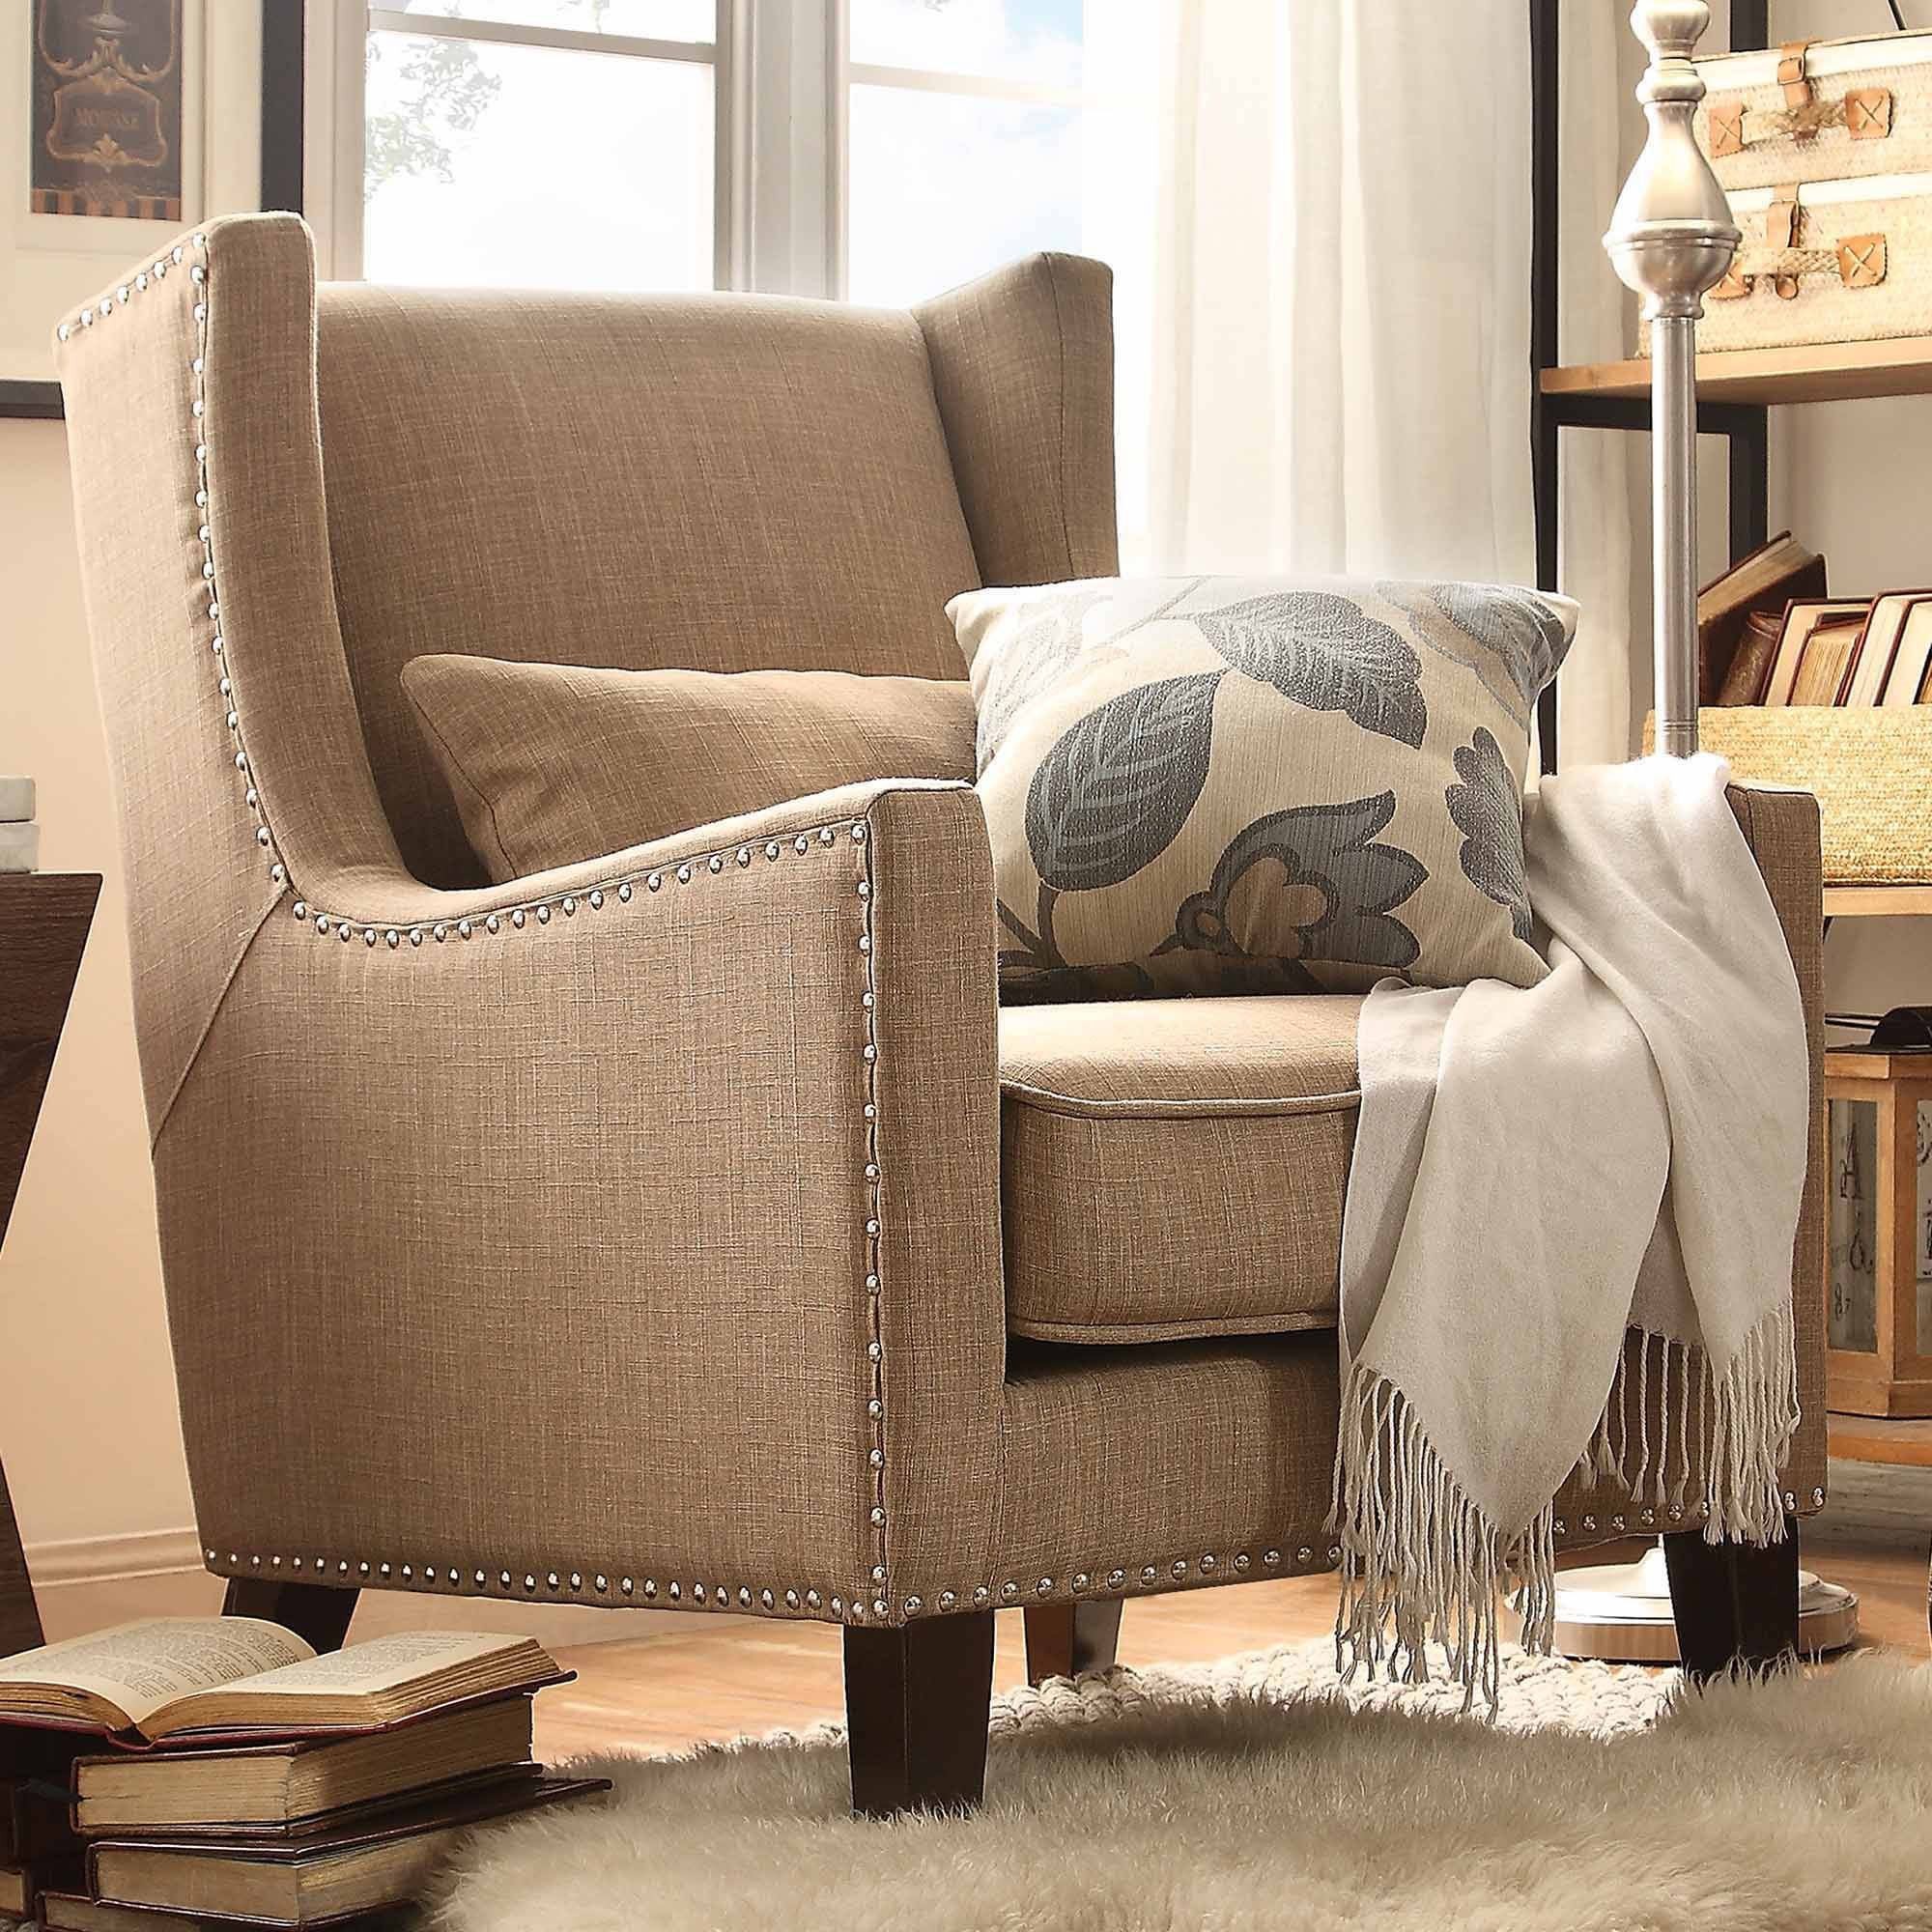 Weston Home St Alden Living Room Linen Accent Chair With Matching Throw Pillow Light Brown Walmart Com Linen Accent Chairs Blue And Gold Bedroom Weston Home